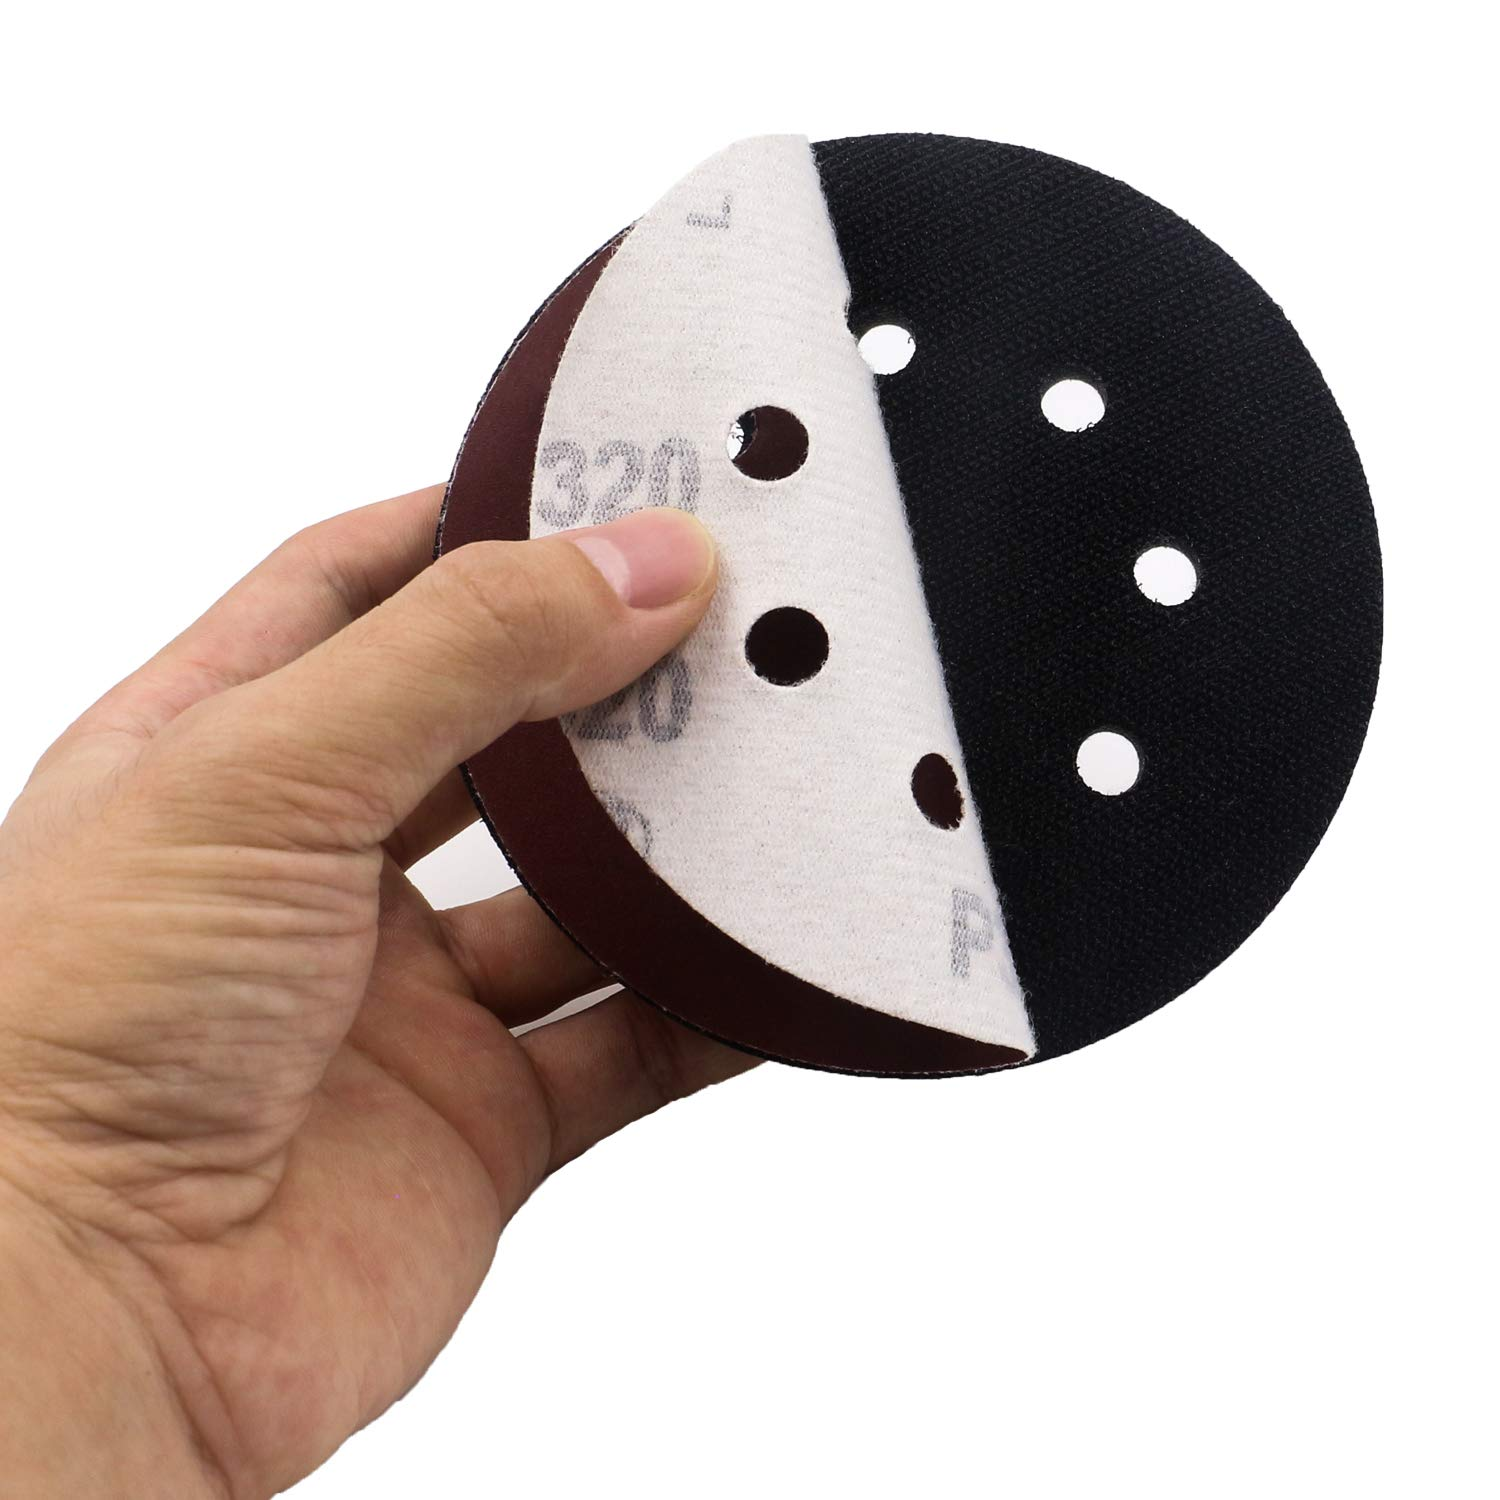 Set of 5 5 Inch 8 Holes Soft Density Interface Pads Hook and Loop 5 Sponge Cushion Buffer Backing Pad